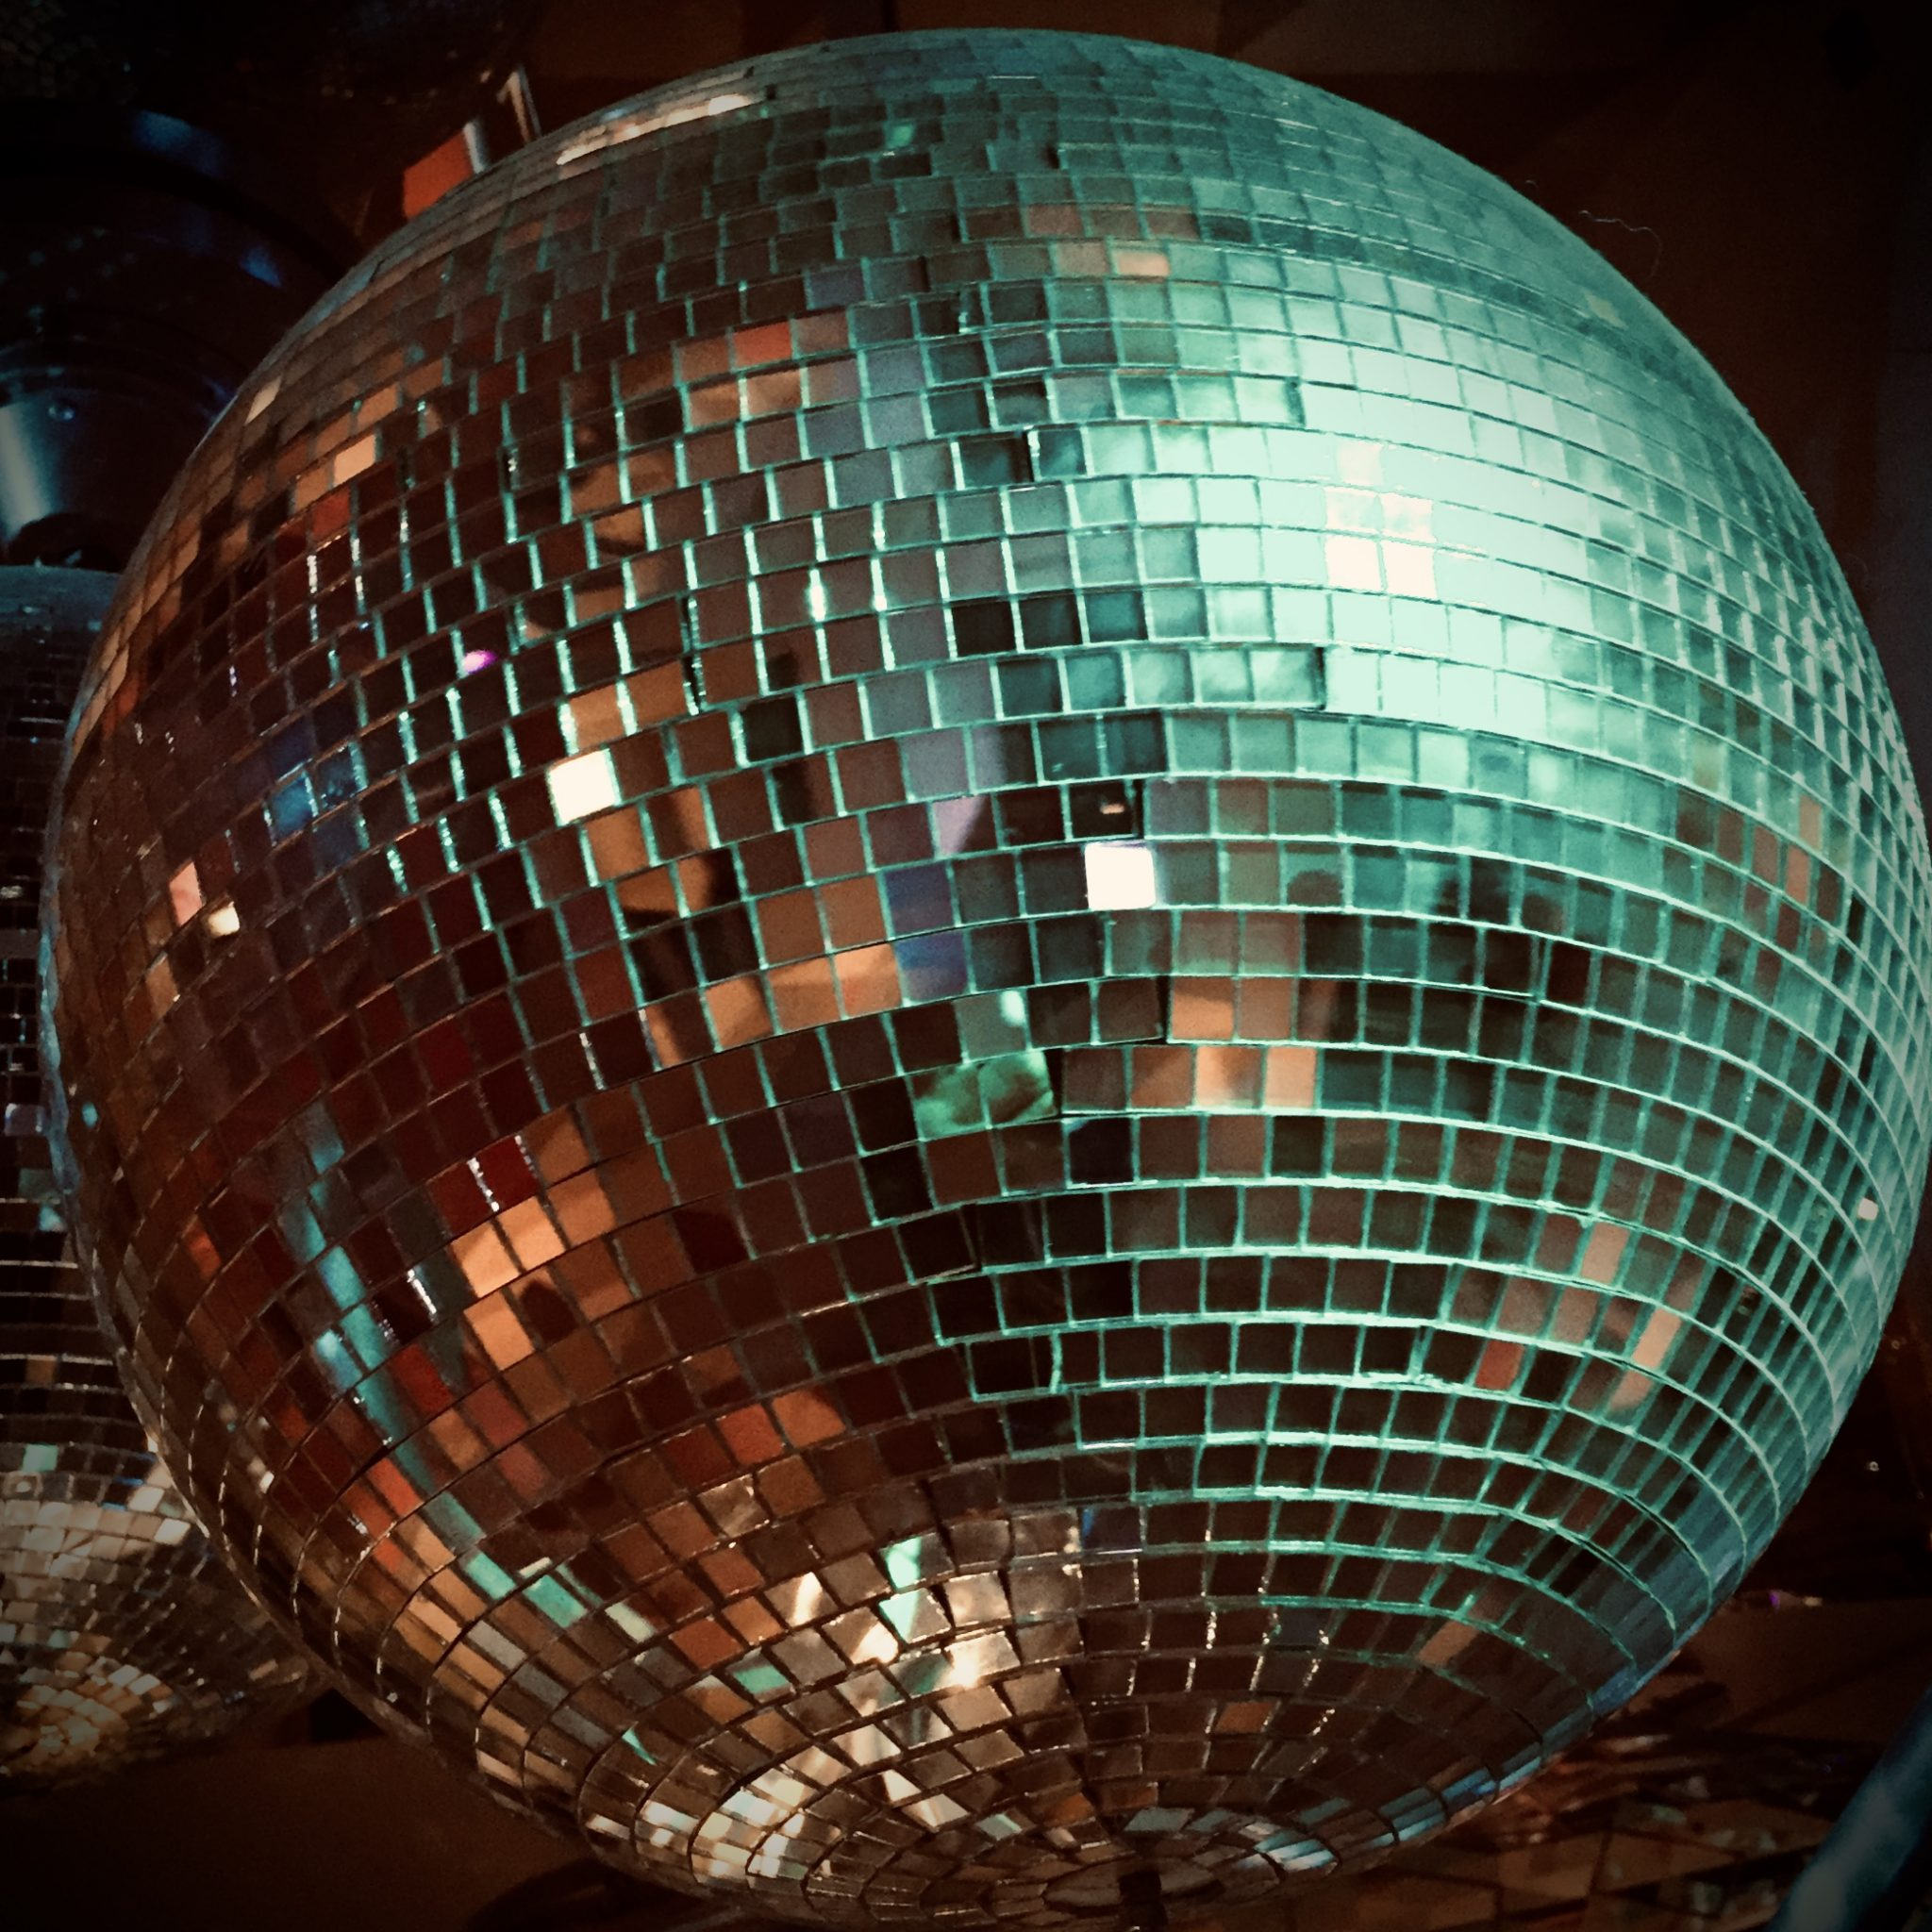 Tokyo ON In The Mix: Love Unlimited. Discoball at Sunshine 60